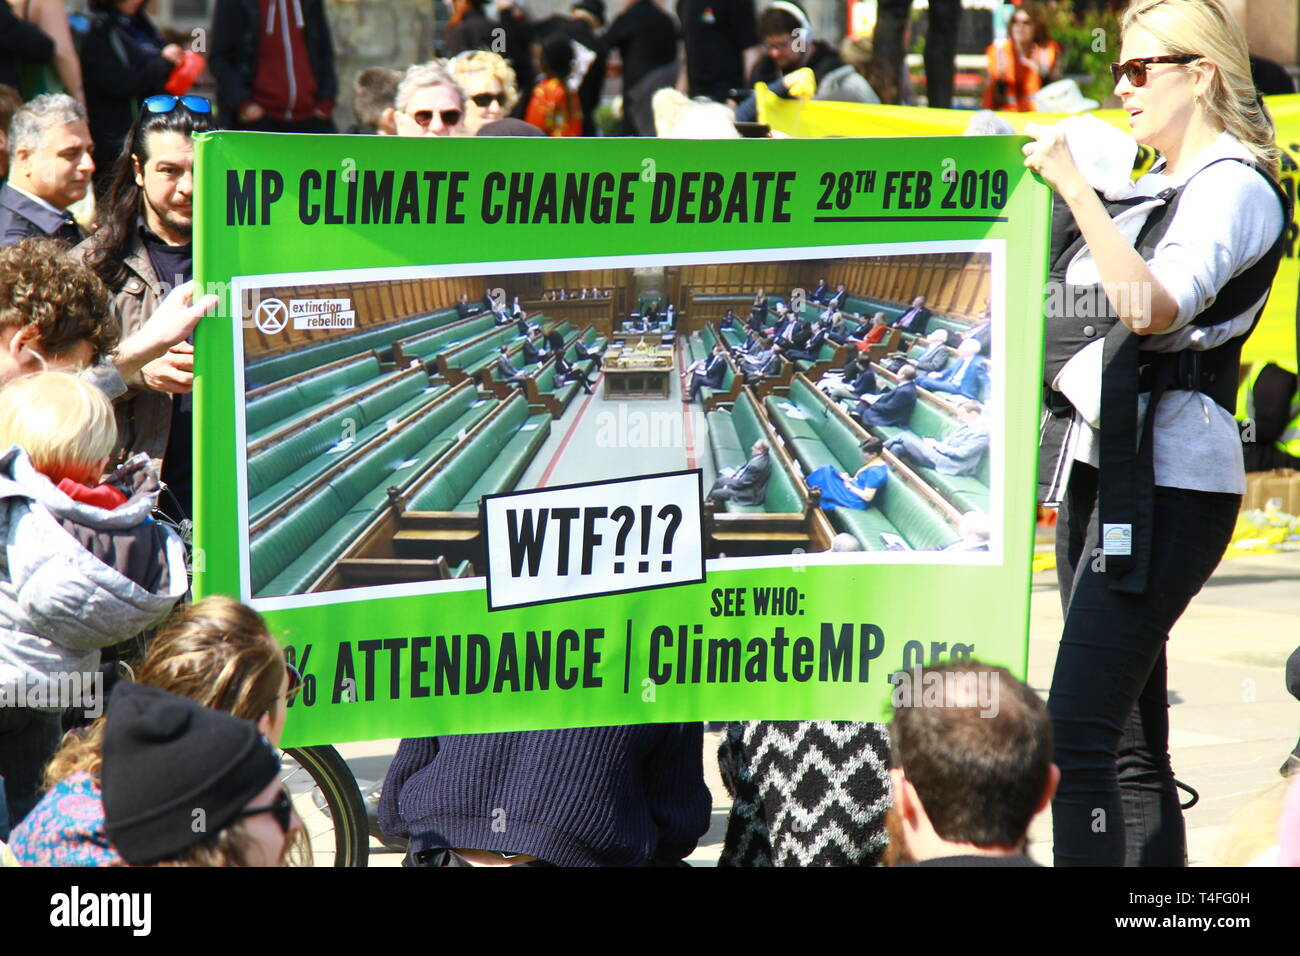 CLIMATE CHANGE DEBATE SIGN DEPICTING HOW FEW MEMBERS OF PARLIAMENT ATTENDED THE CLIMATE CHANGE DEBATE IN THE HOUSE OF COMMONS ON THE 28TH FEBRUARY 2019. EXTINCTION REBELLION DEMONSTRATION ON 15TH APRIL 2019 IN PARLIAMENT SQUARE, WESTMINSTER, LONDON, UK. Stock Photo